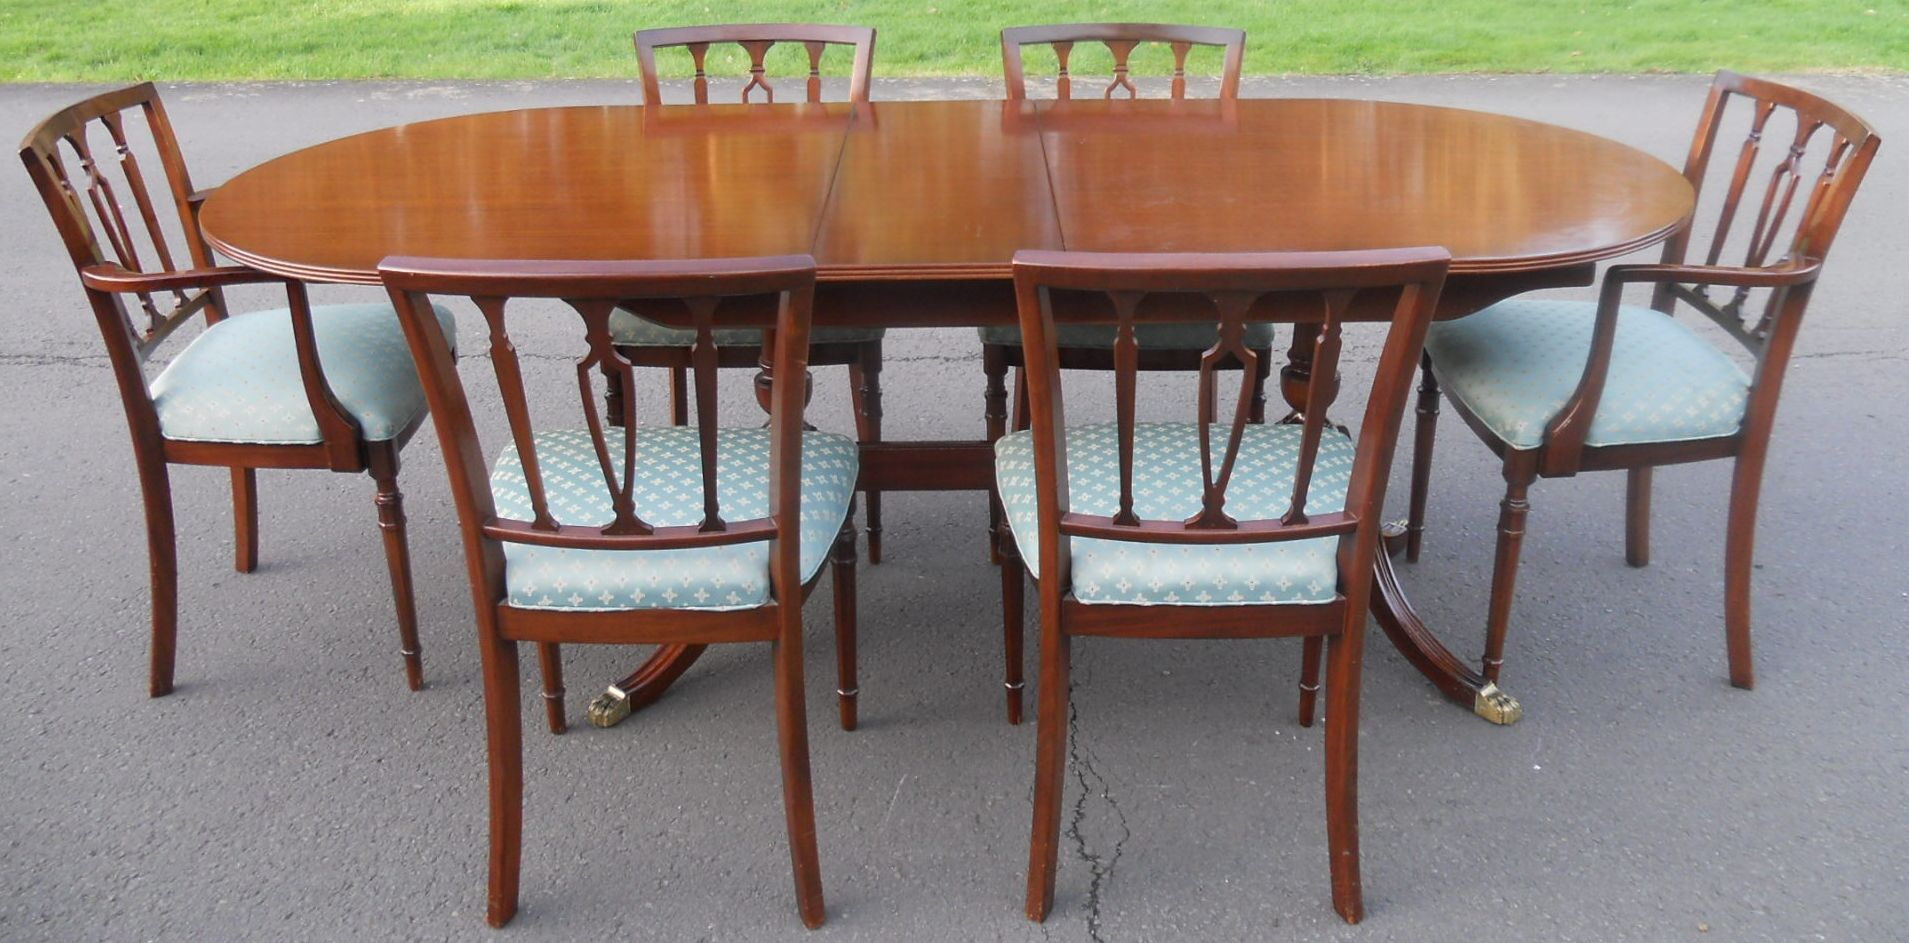 Harrison Antique Furniture